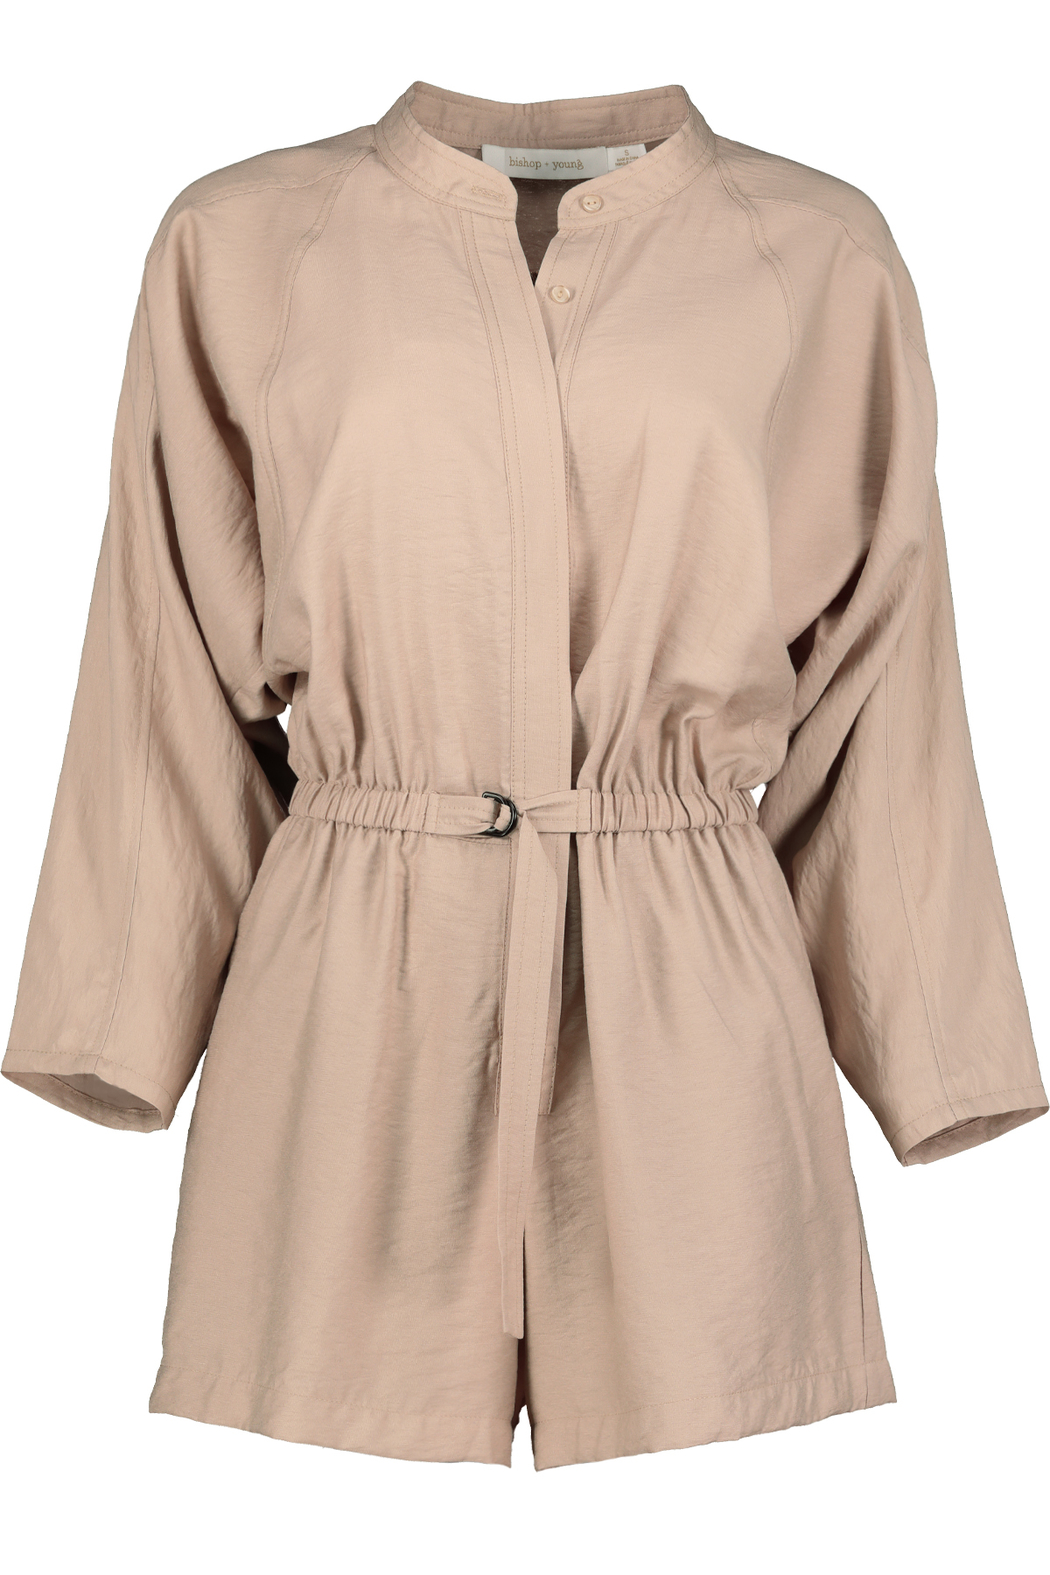 Bishop + Young Utility Belted Romper - Main Image